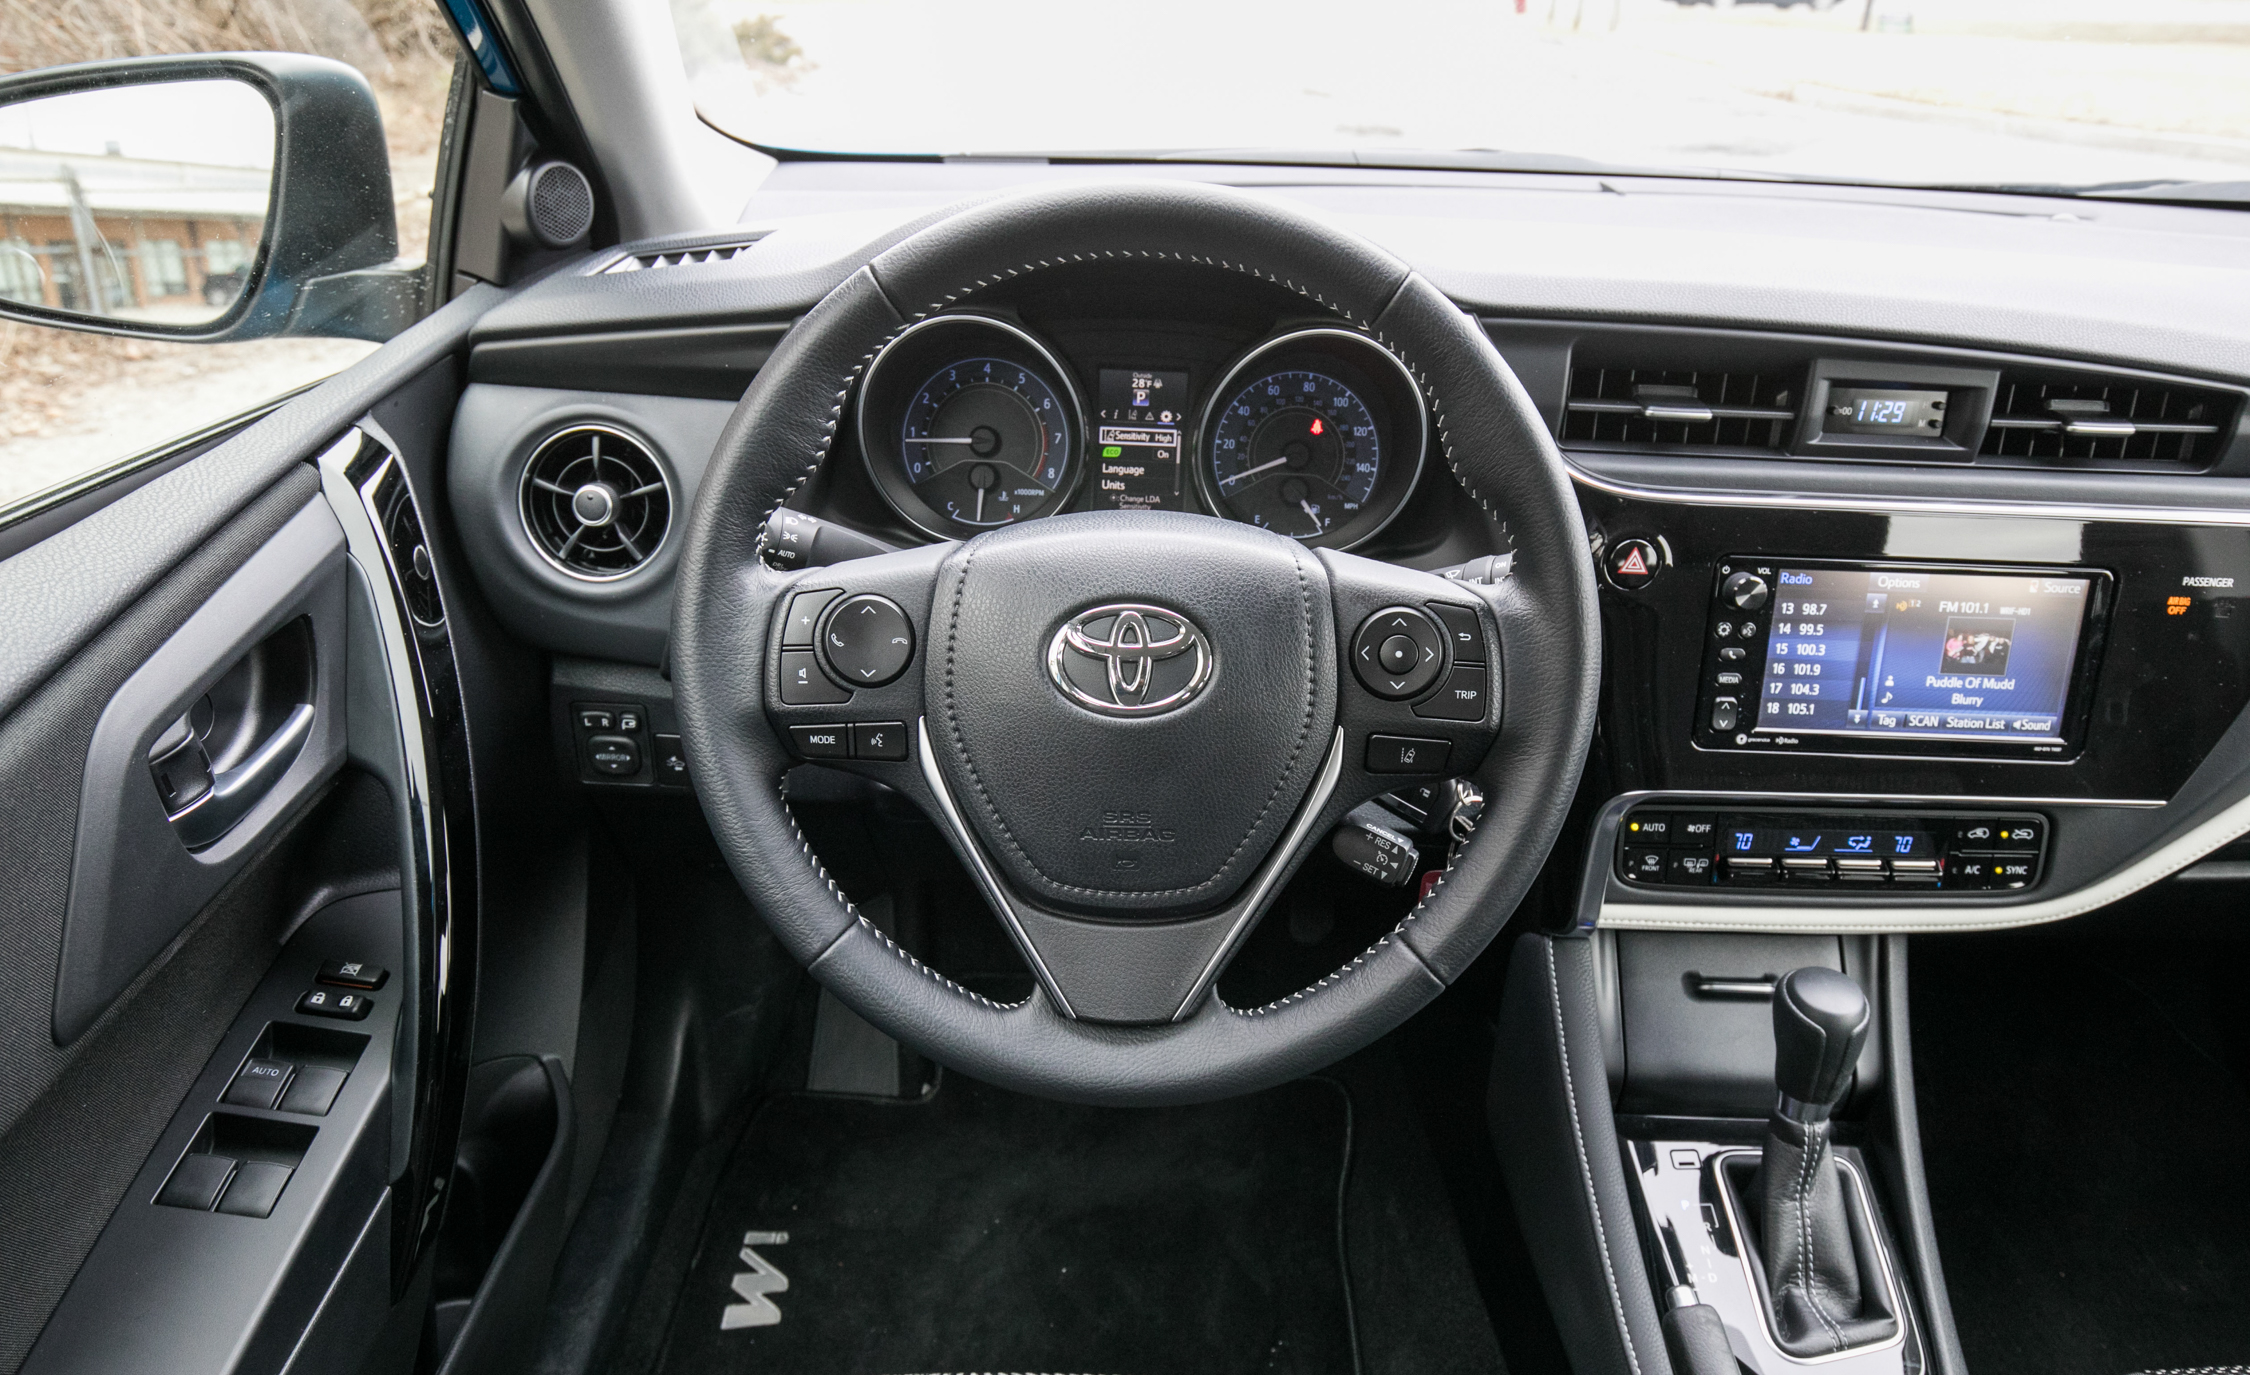 2017 Toyota Corolla IM Hatchback Interior Steering (Photo 31 of 52)